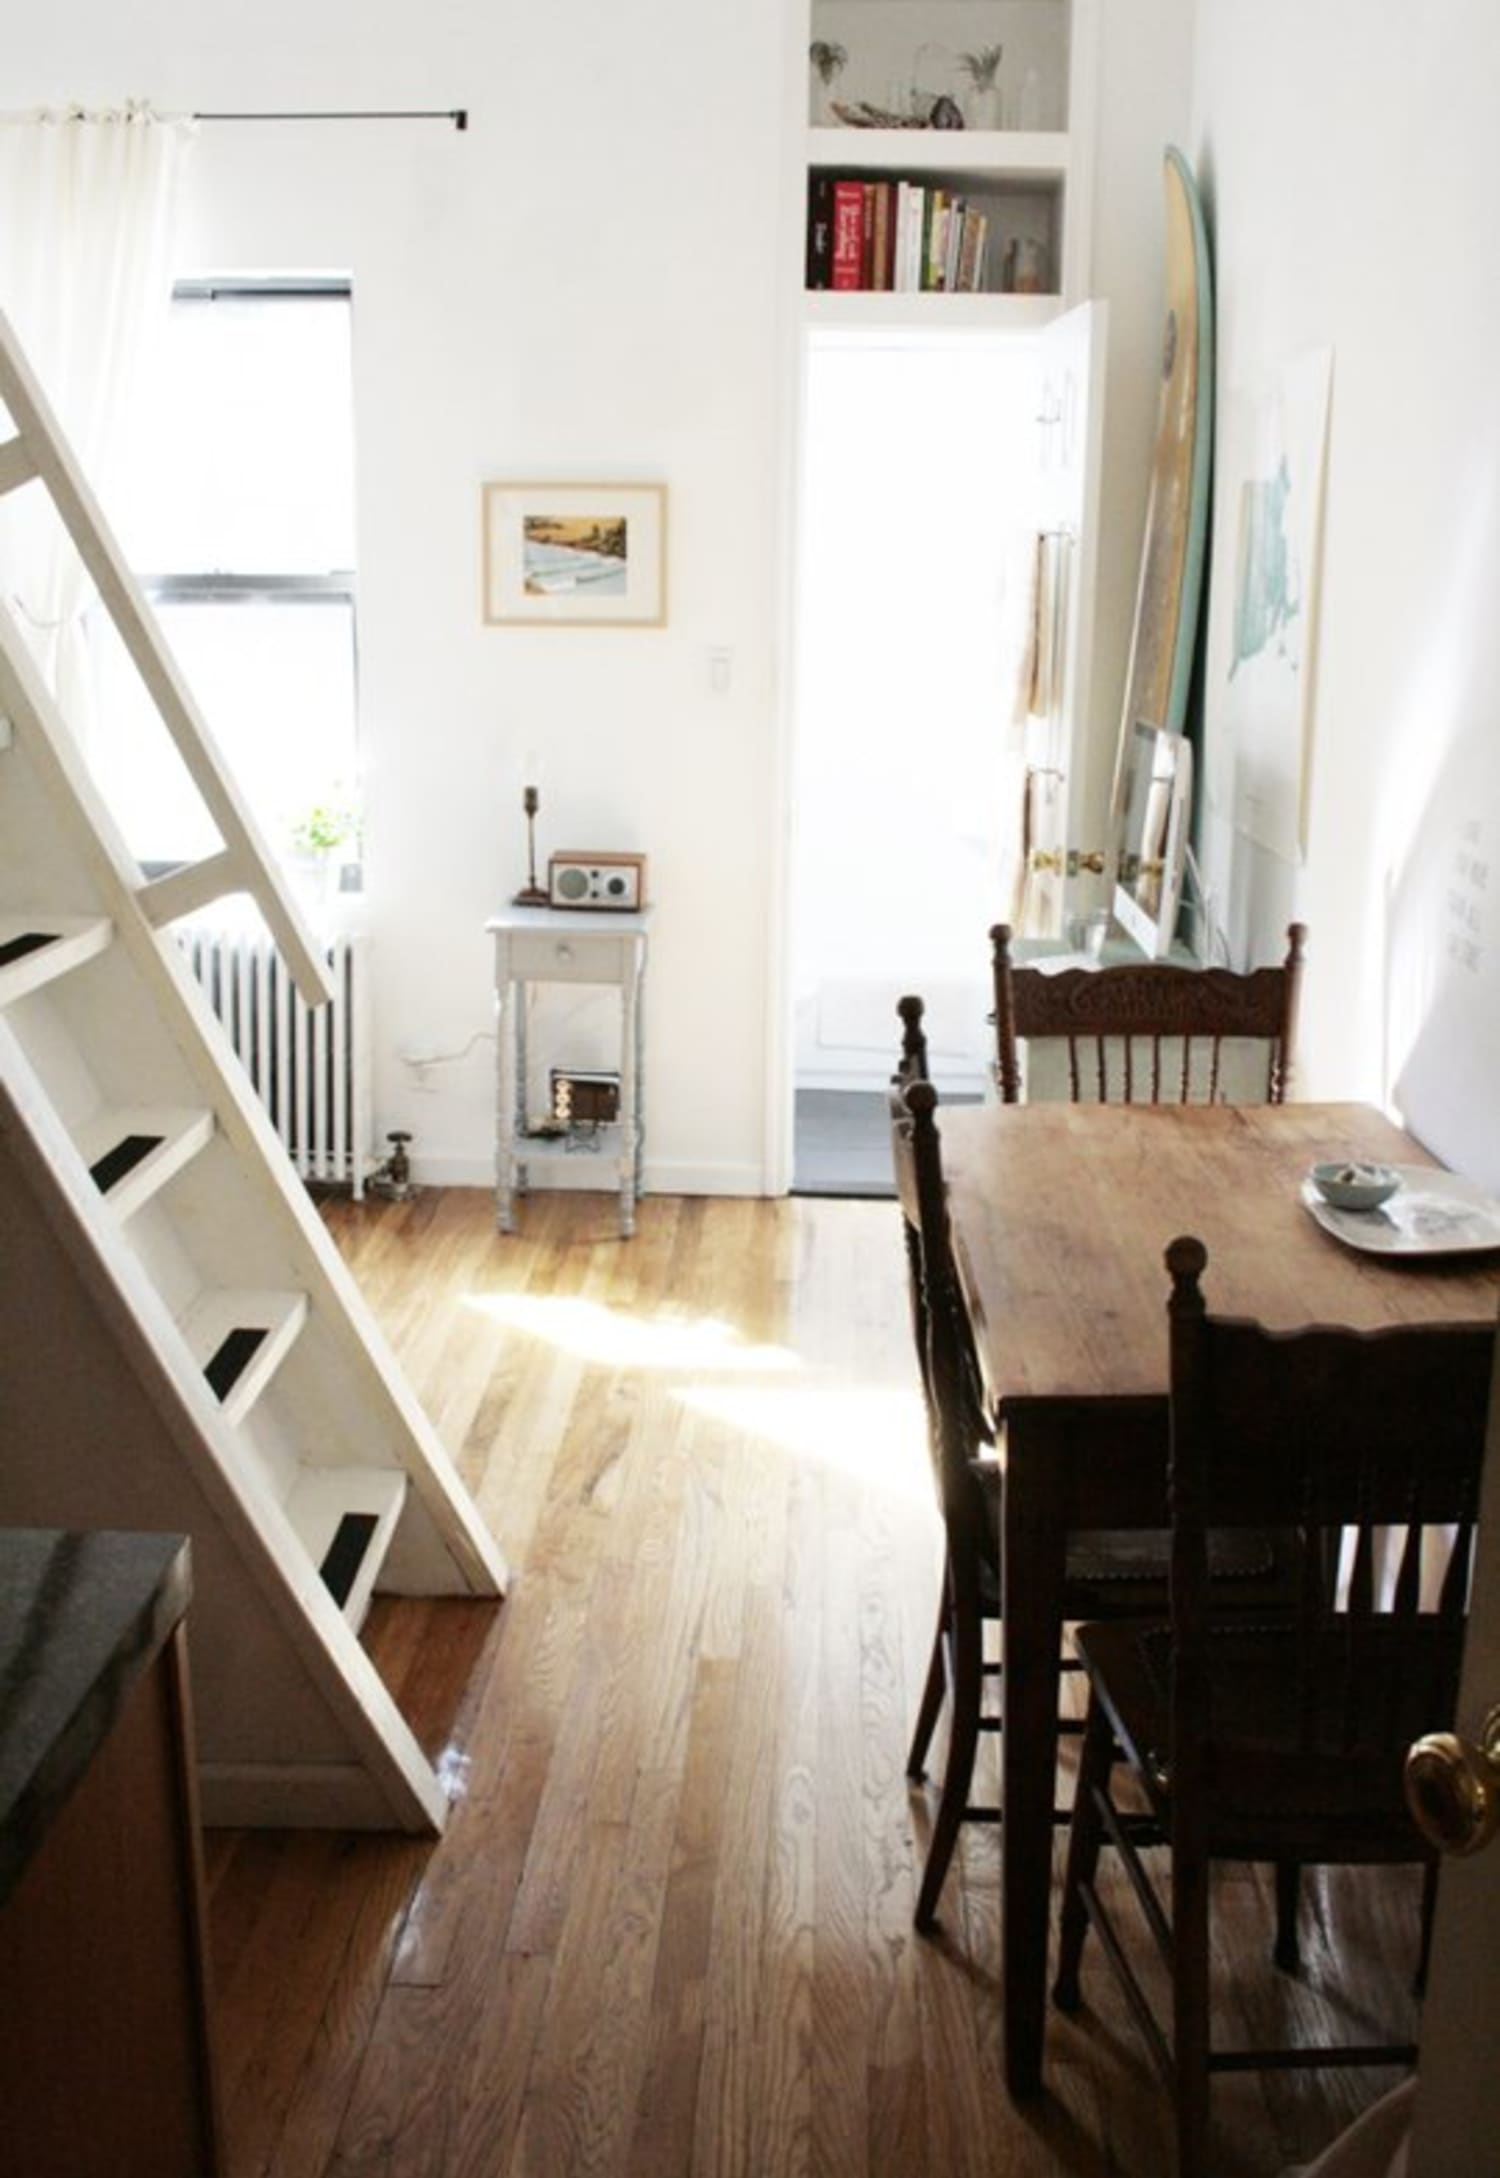 New Year, New Home: How To Freshen Up Your Space Without Spending a Dime